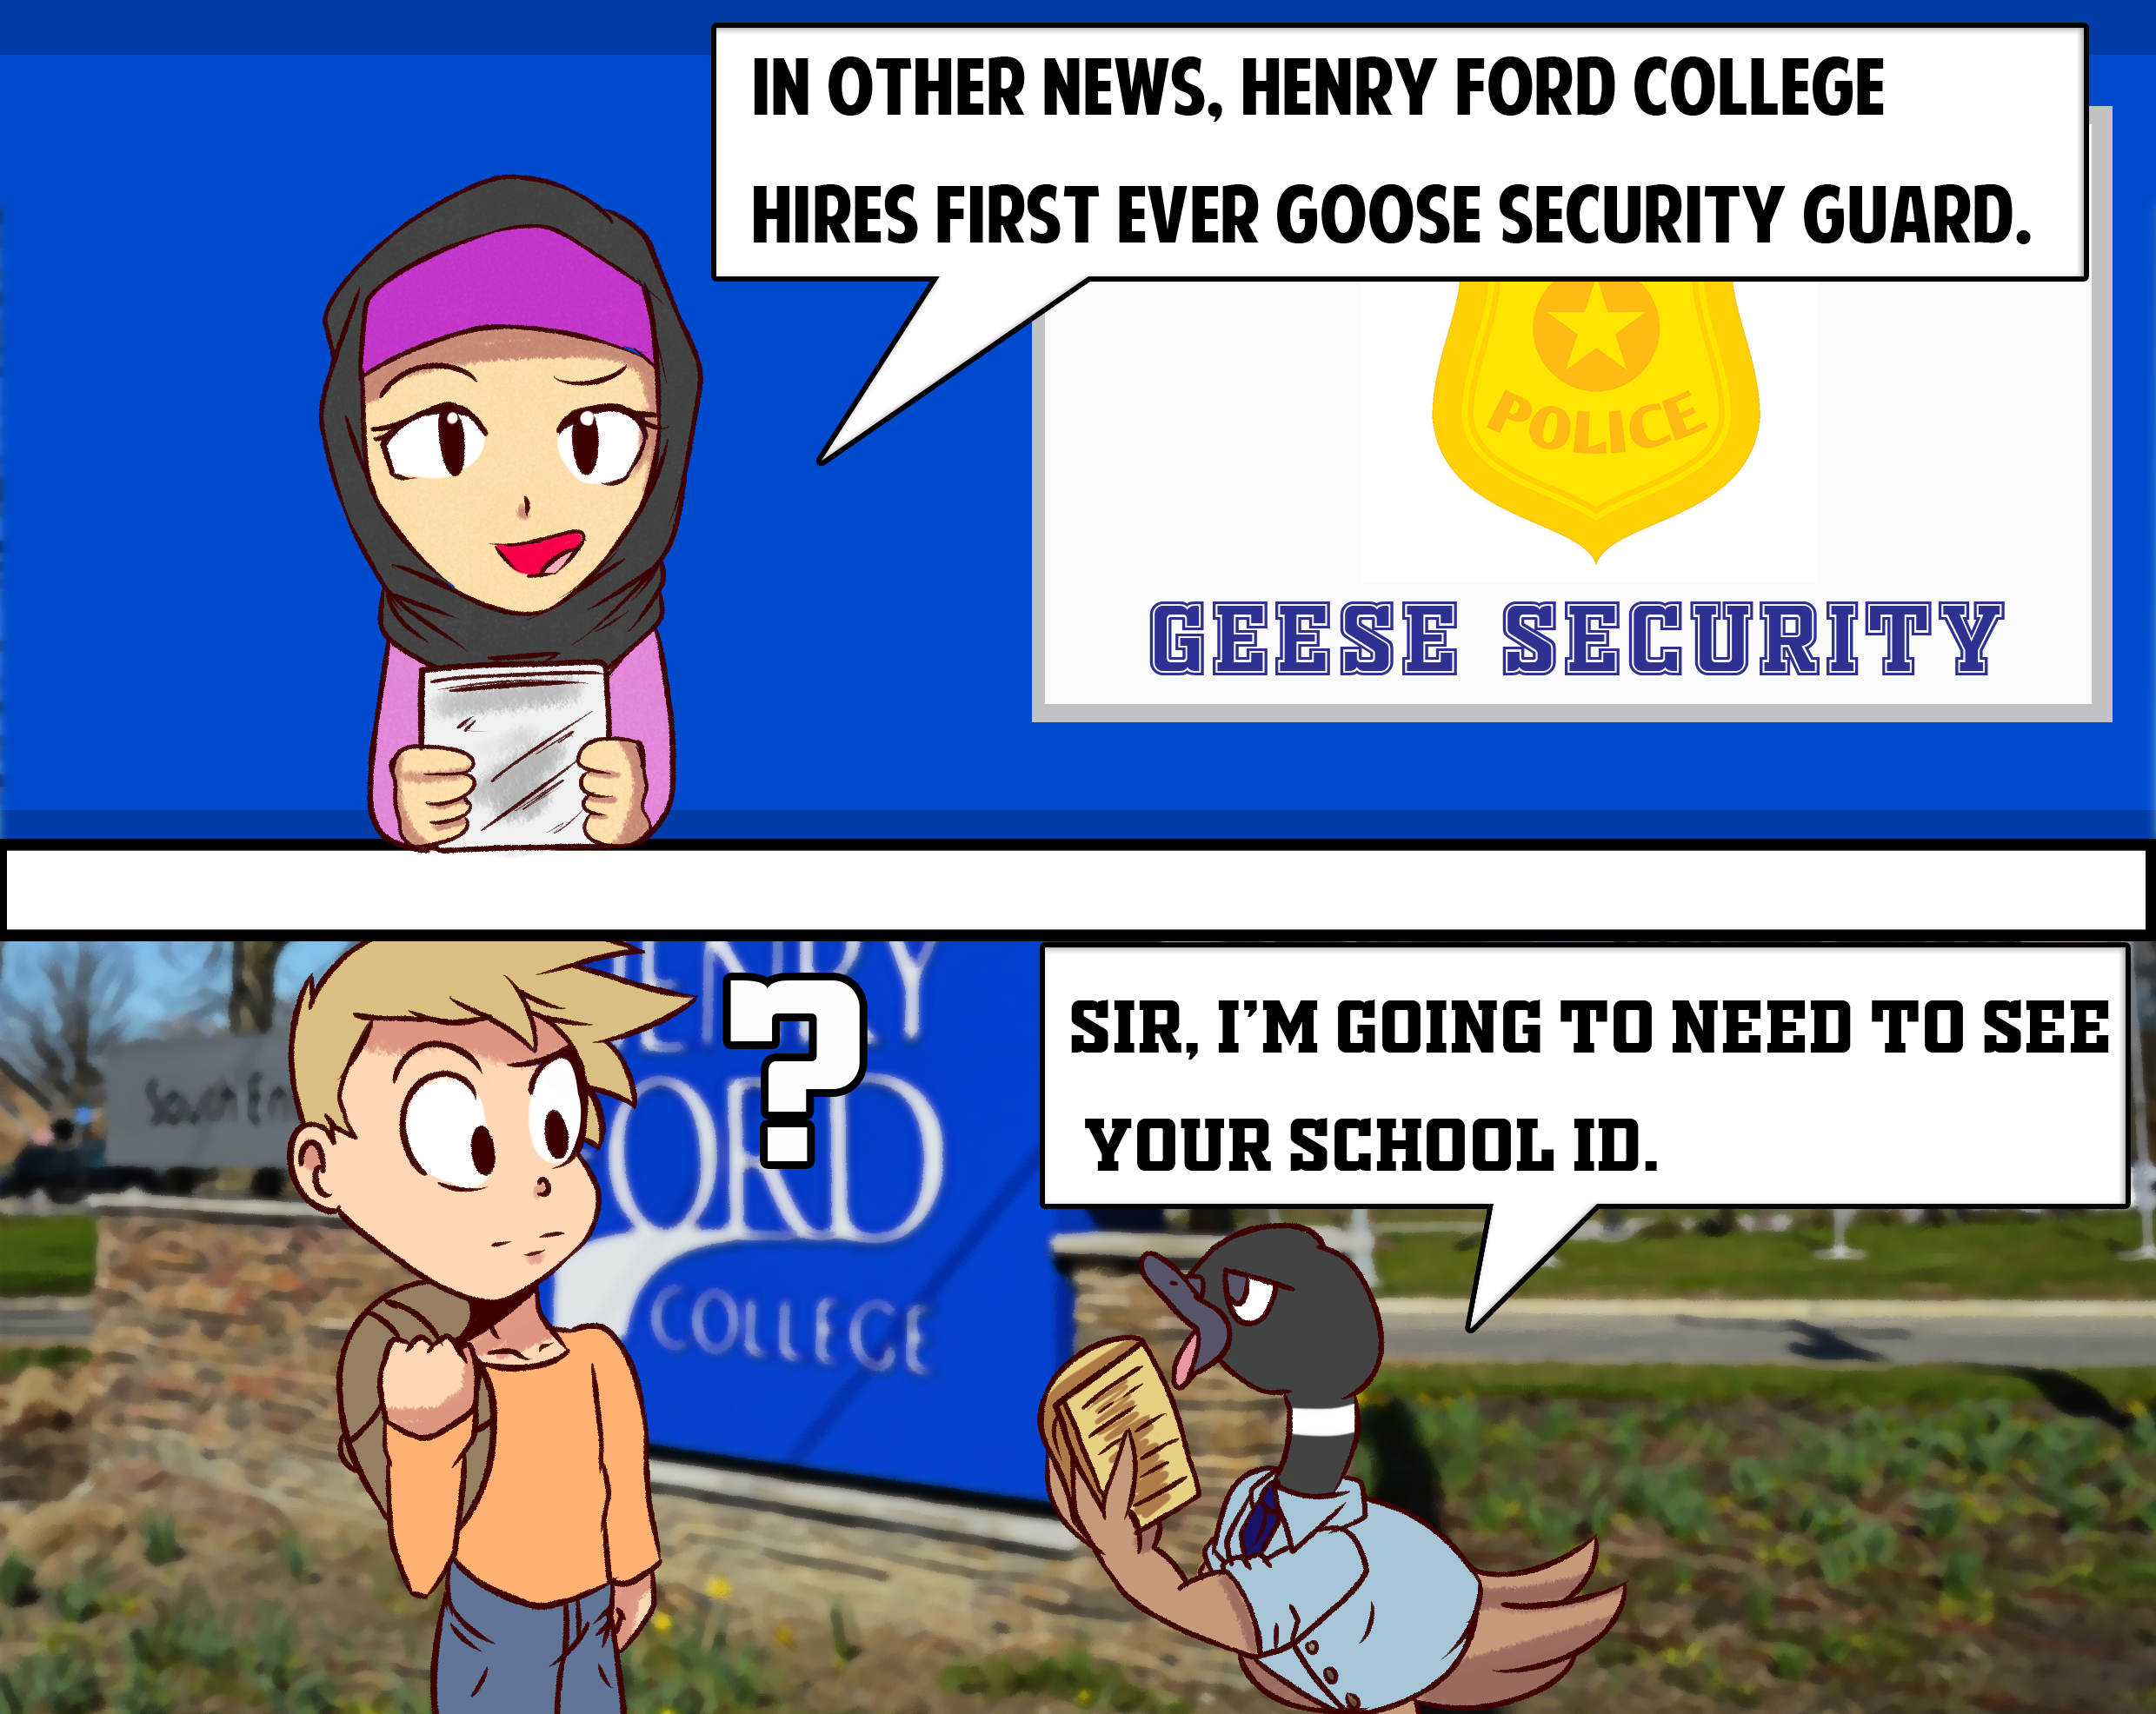 Two-panel comic strip depicting a Canadian goose as an HFC security guard